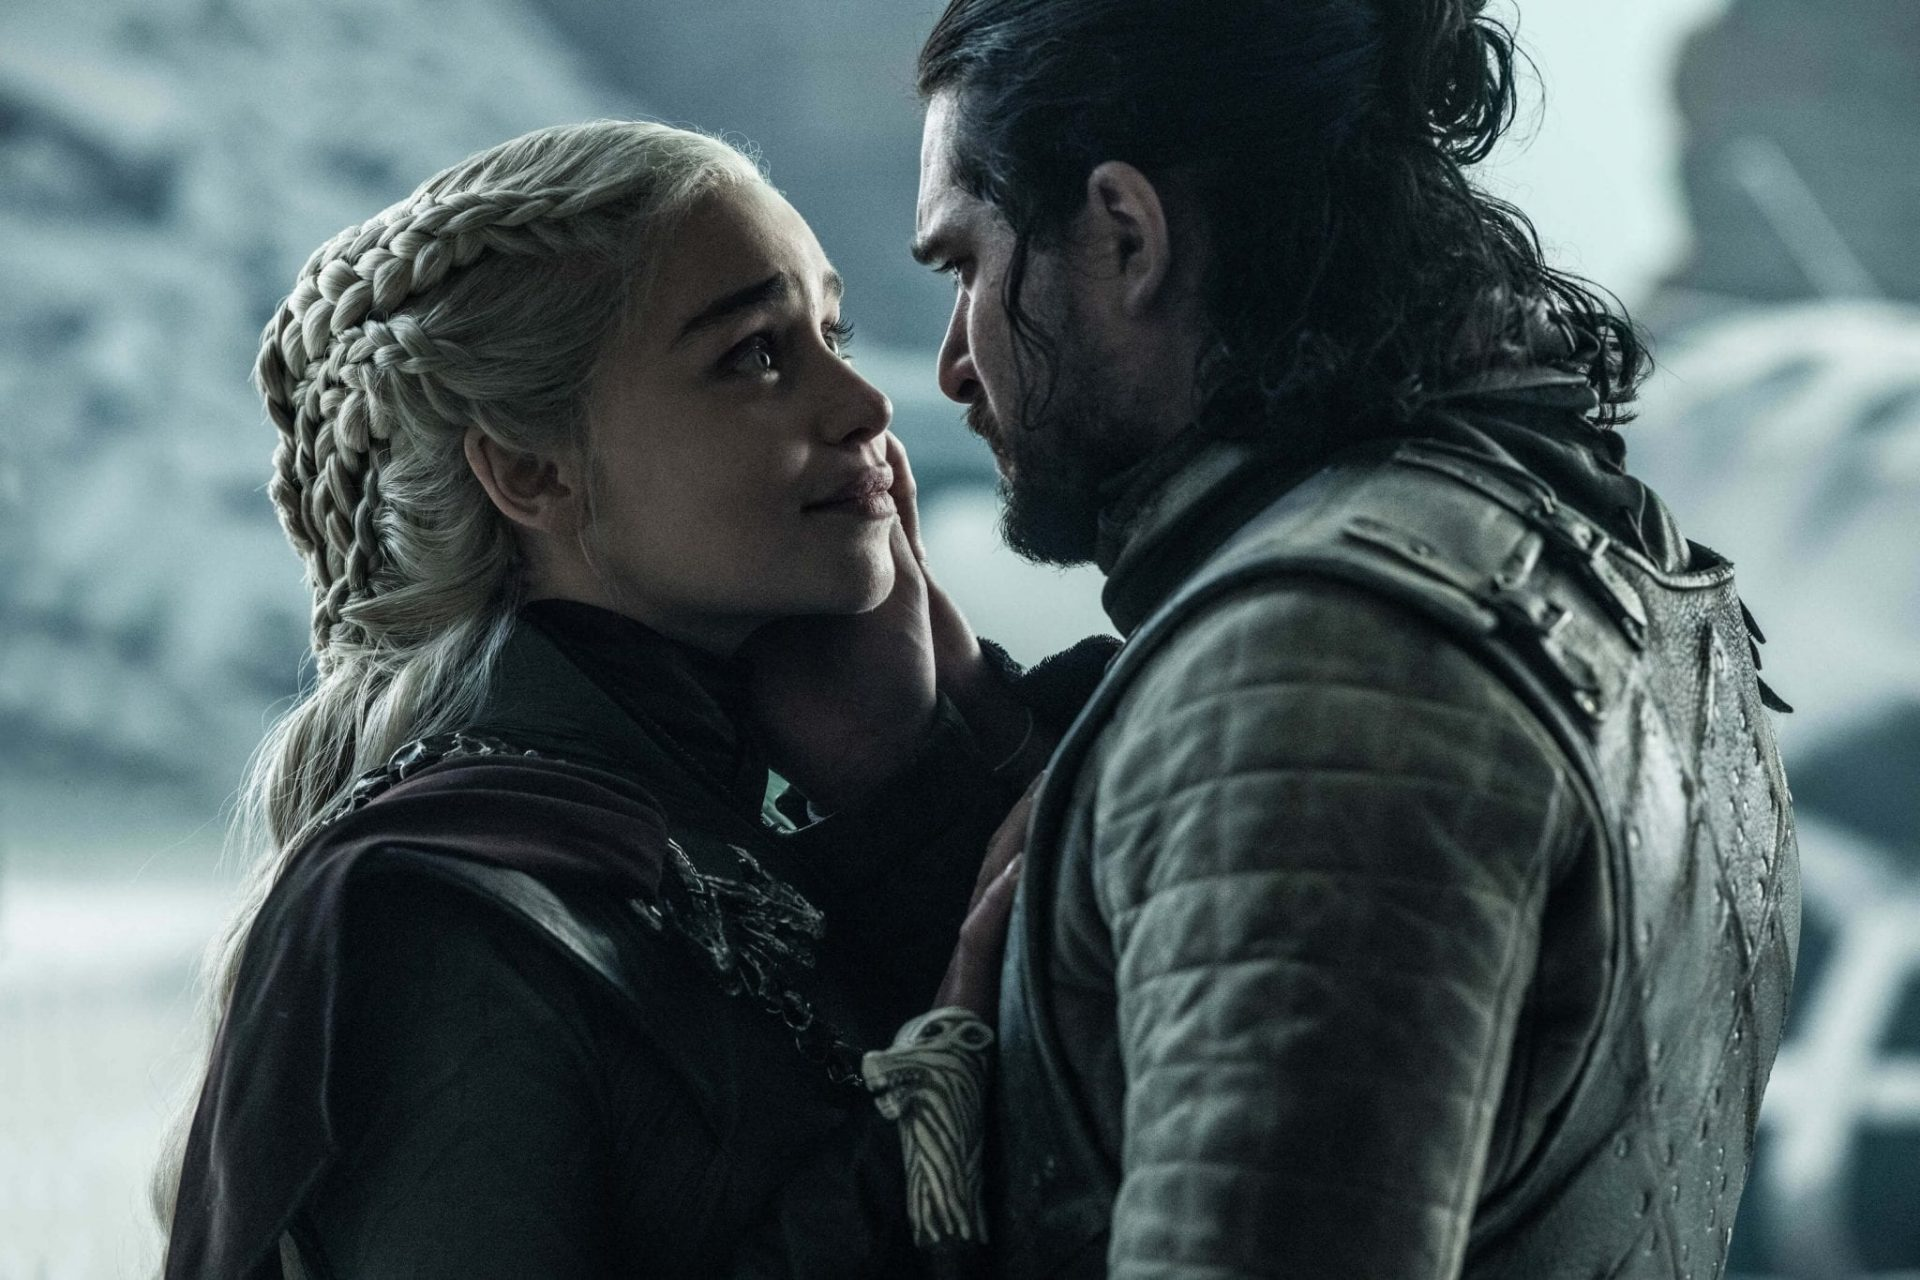 Daenerys e Jon Snow no último episódio de Game of Thrones.